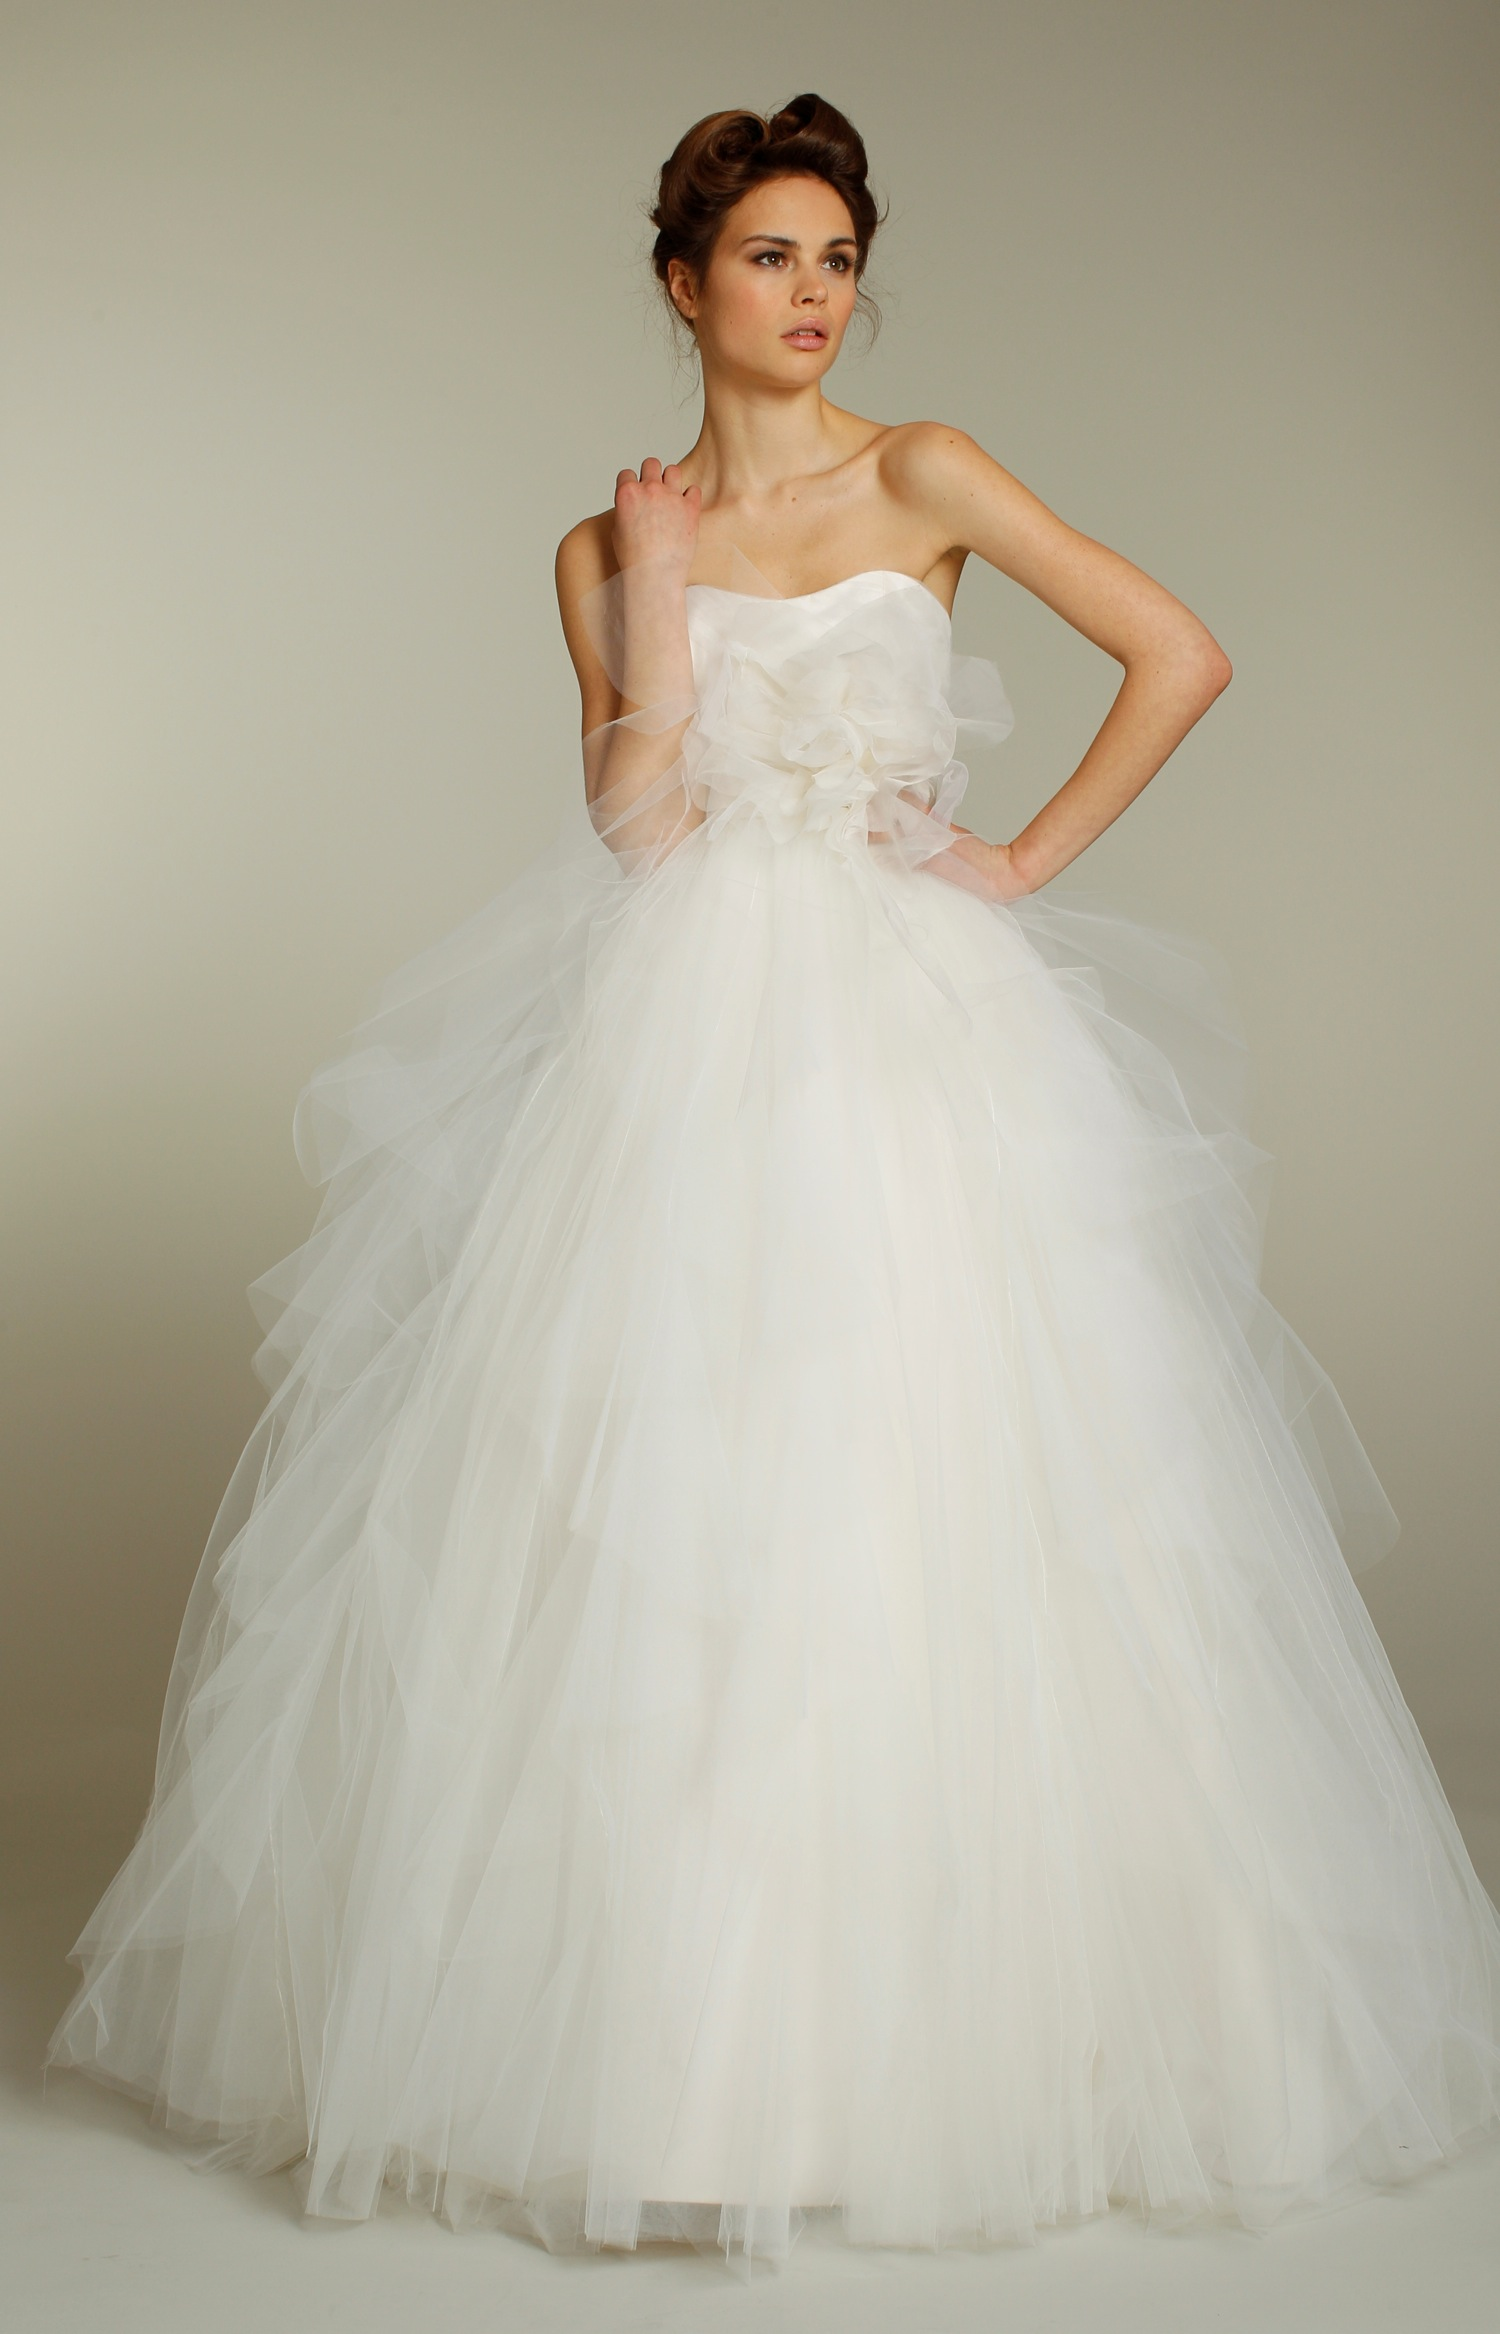 1156-blush-wedding-dress-2011-bridal-gowns-tulle-ballgown-strapless-sweetheart-front.original